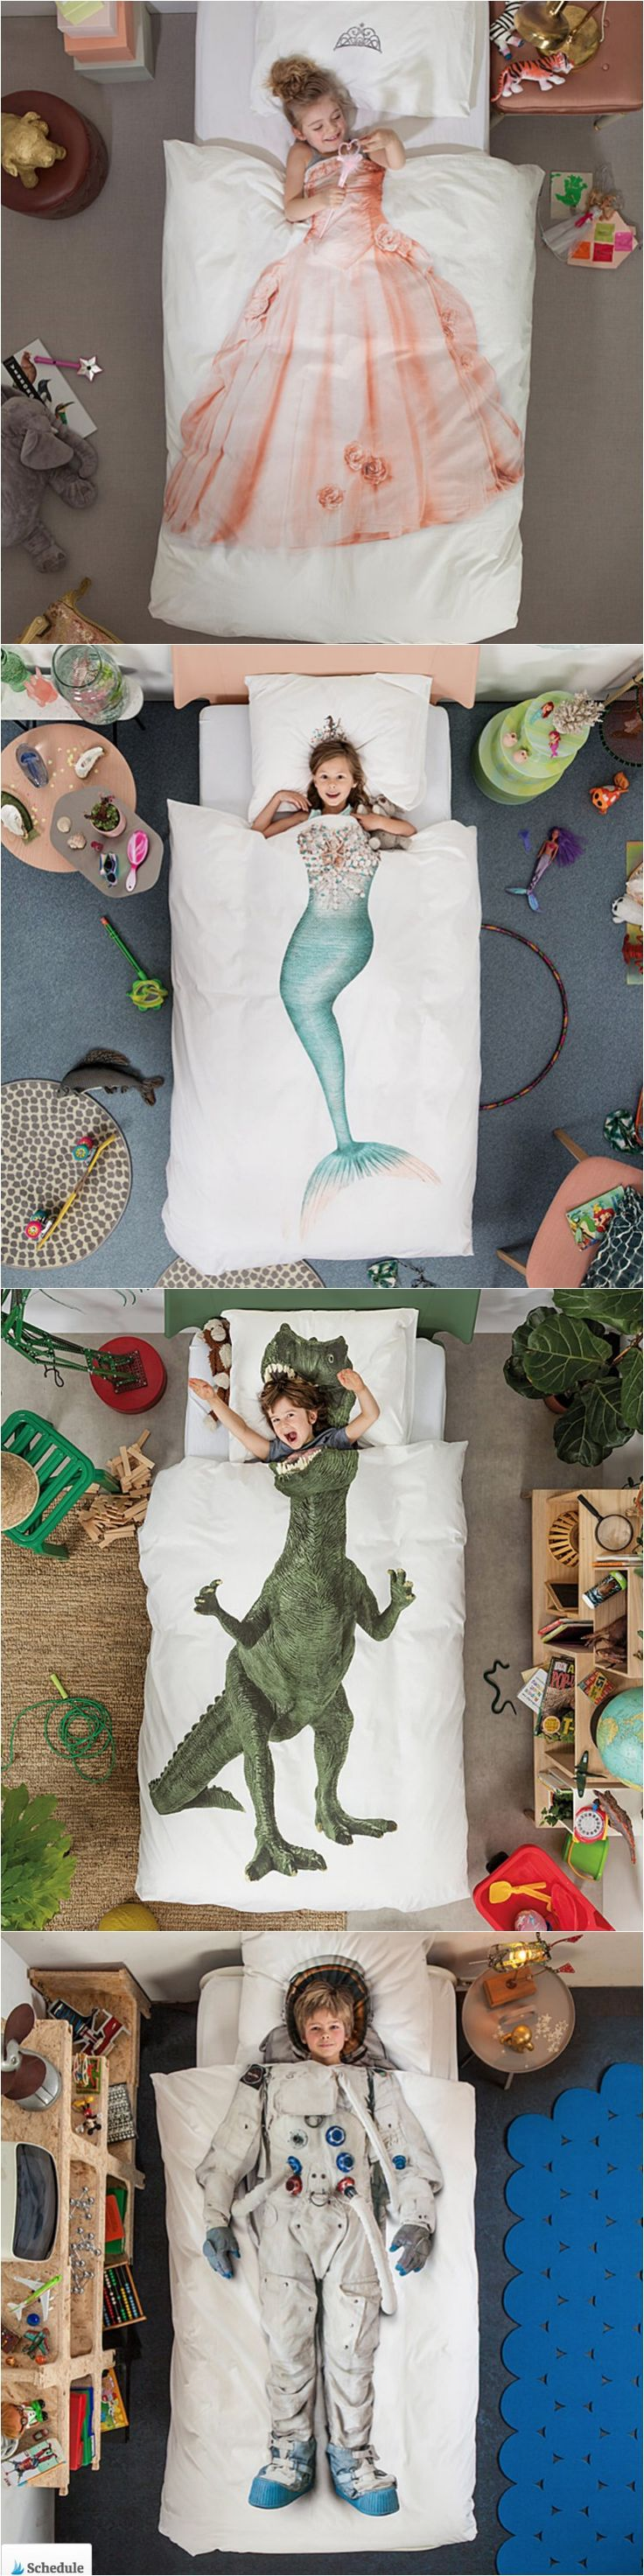 Princess, mermaid, dinosaur, astronaut kids bedding. Love these kids duvet and bedding options. Perfect for a kids room!